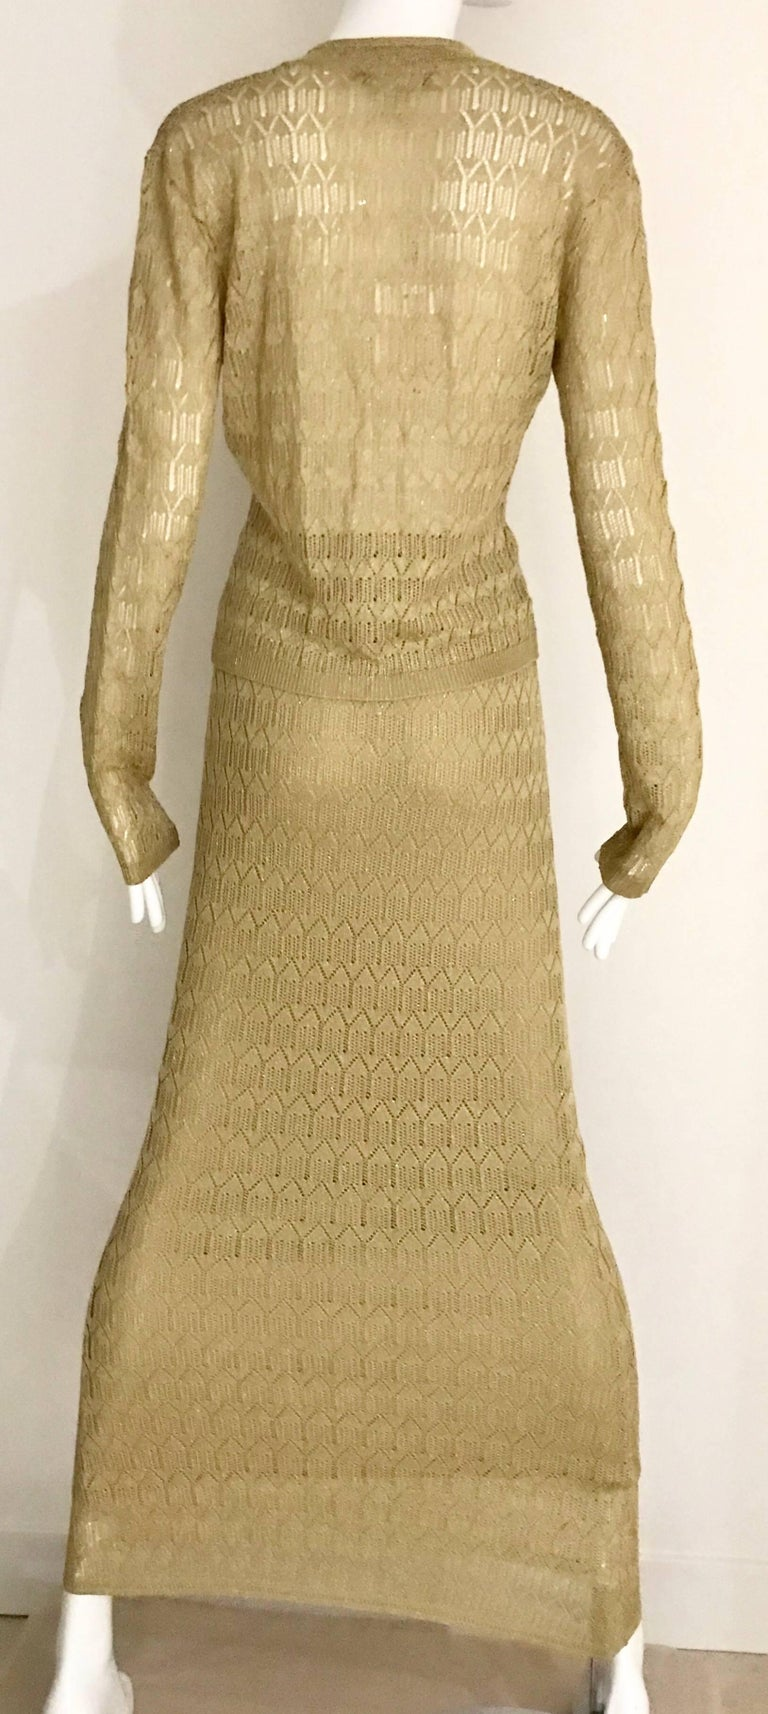 Christian Dior Gold Knit Cardigan Skirt Set For Sale 1